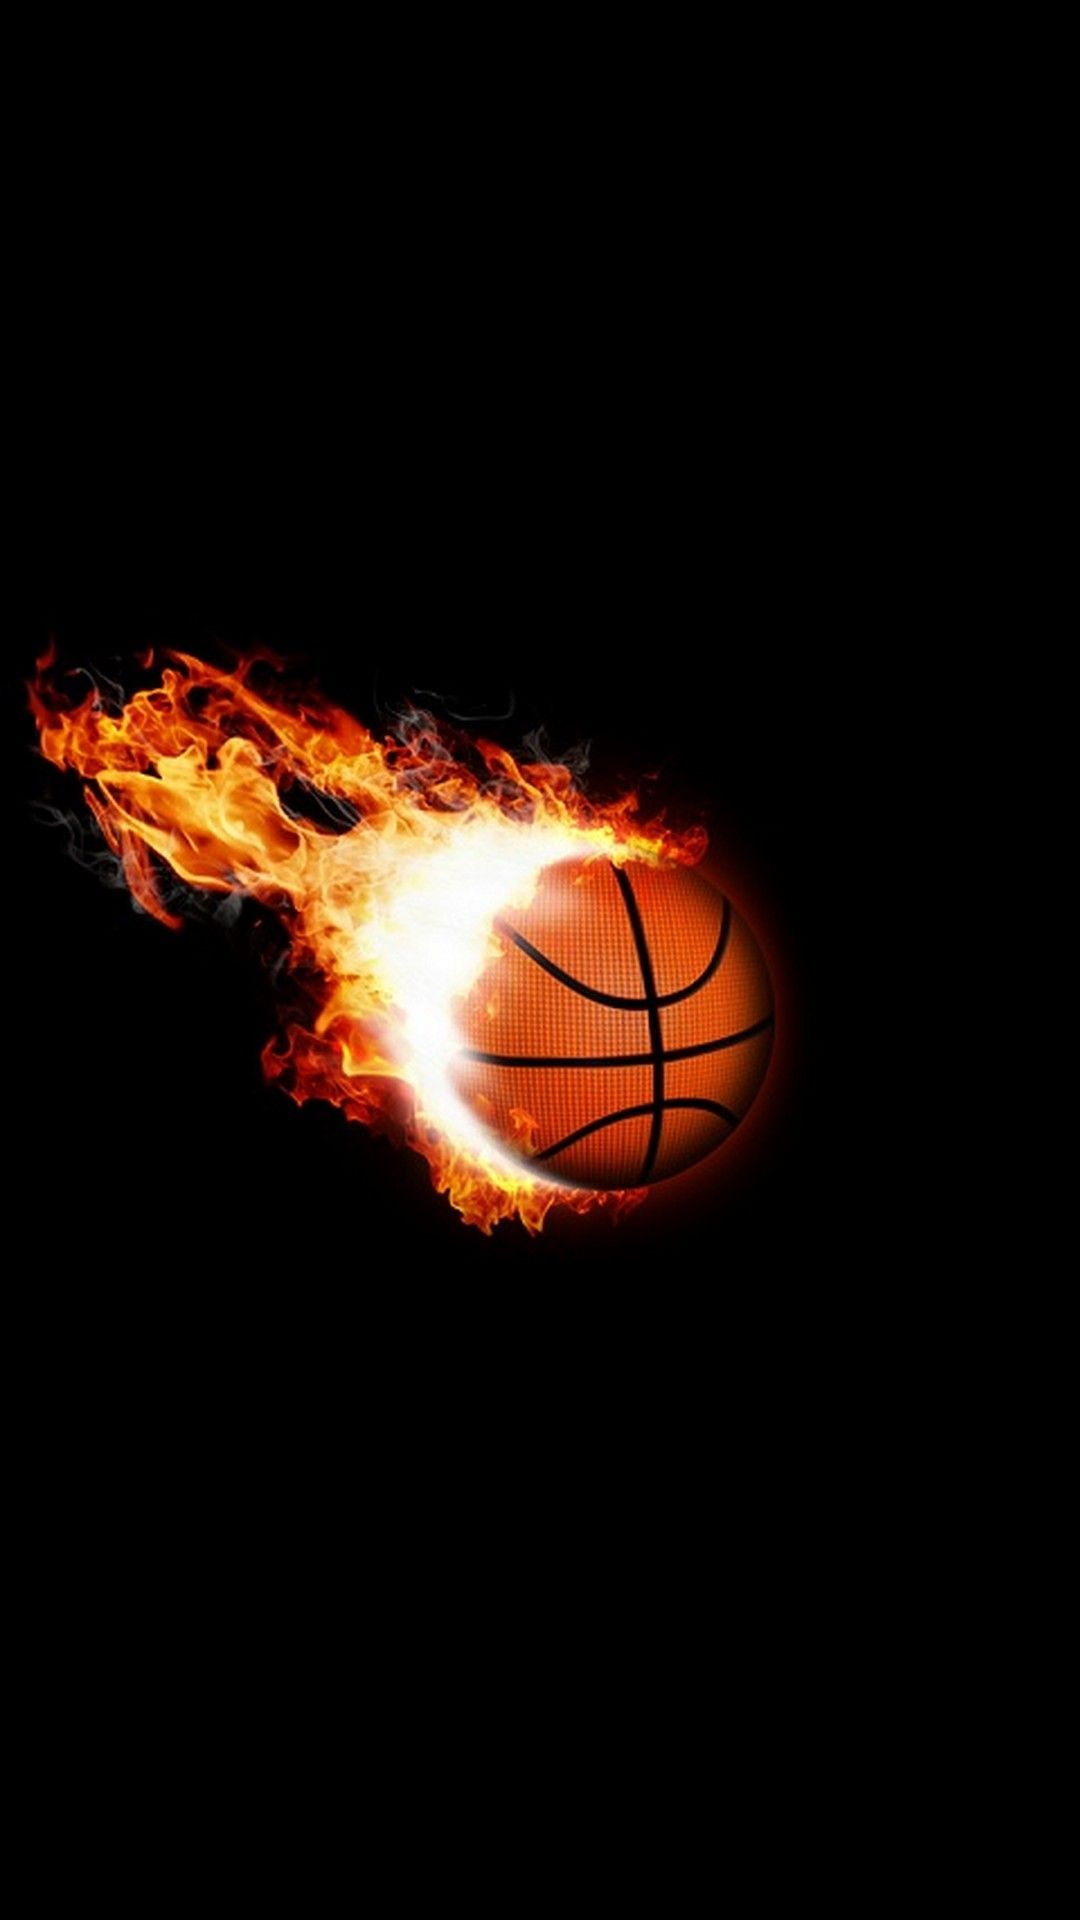 Cool Basketball Hd Wallpaper Android In 2020 Cool Basketball Wallpapers Basketball Wallpapers Hd Hd Wallpaper Iphone